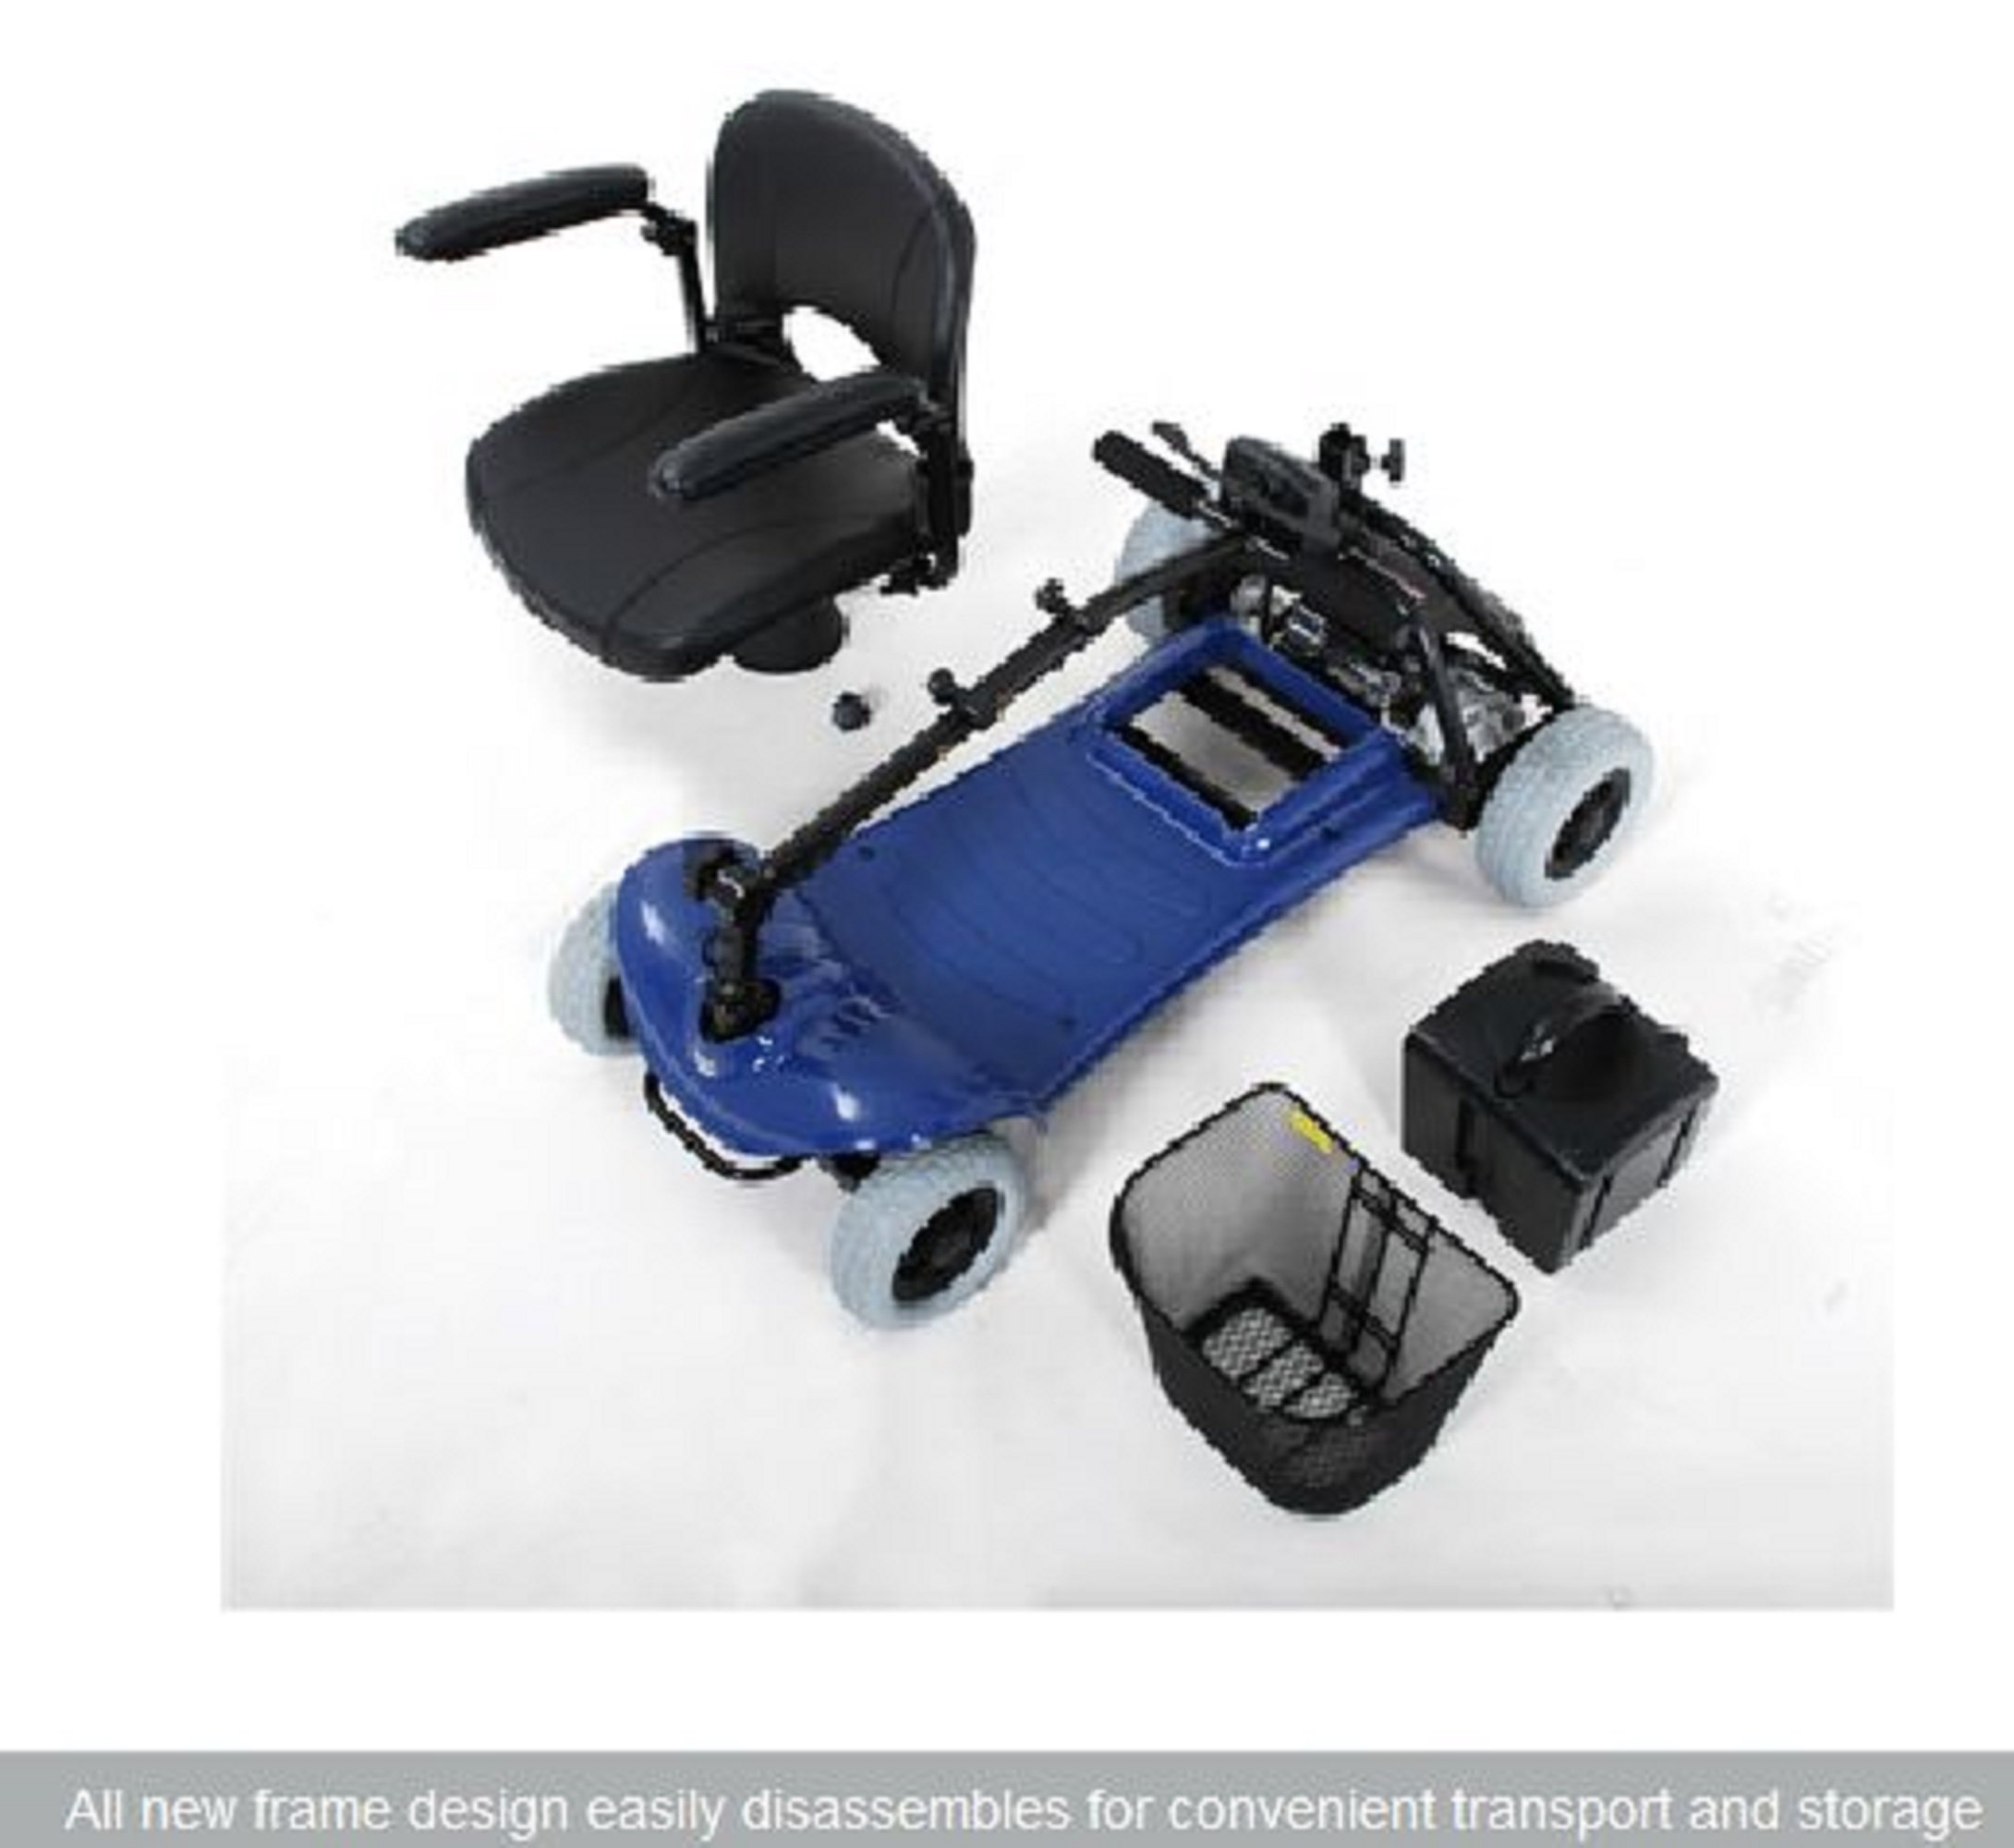 Merits Health Products - Roadster - 4-Wheel Scooter - 15''W x 15''D - Blue by Roadster (Image #2)